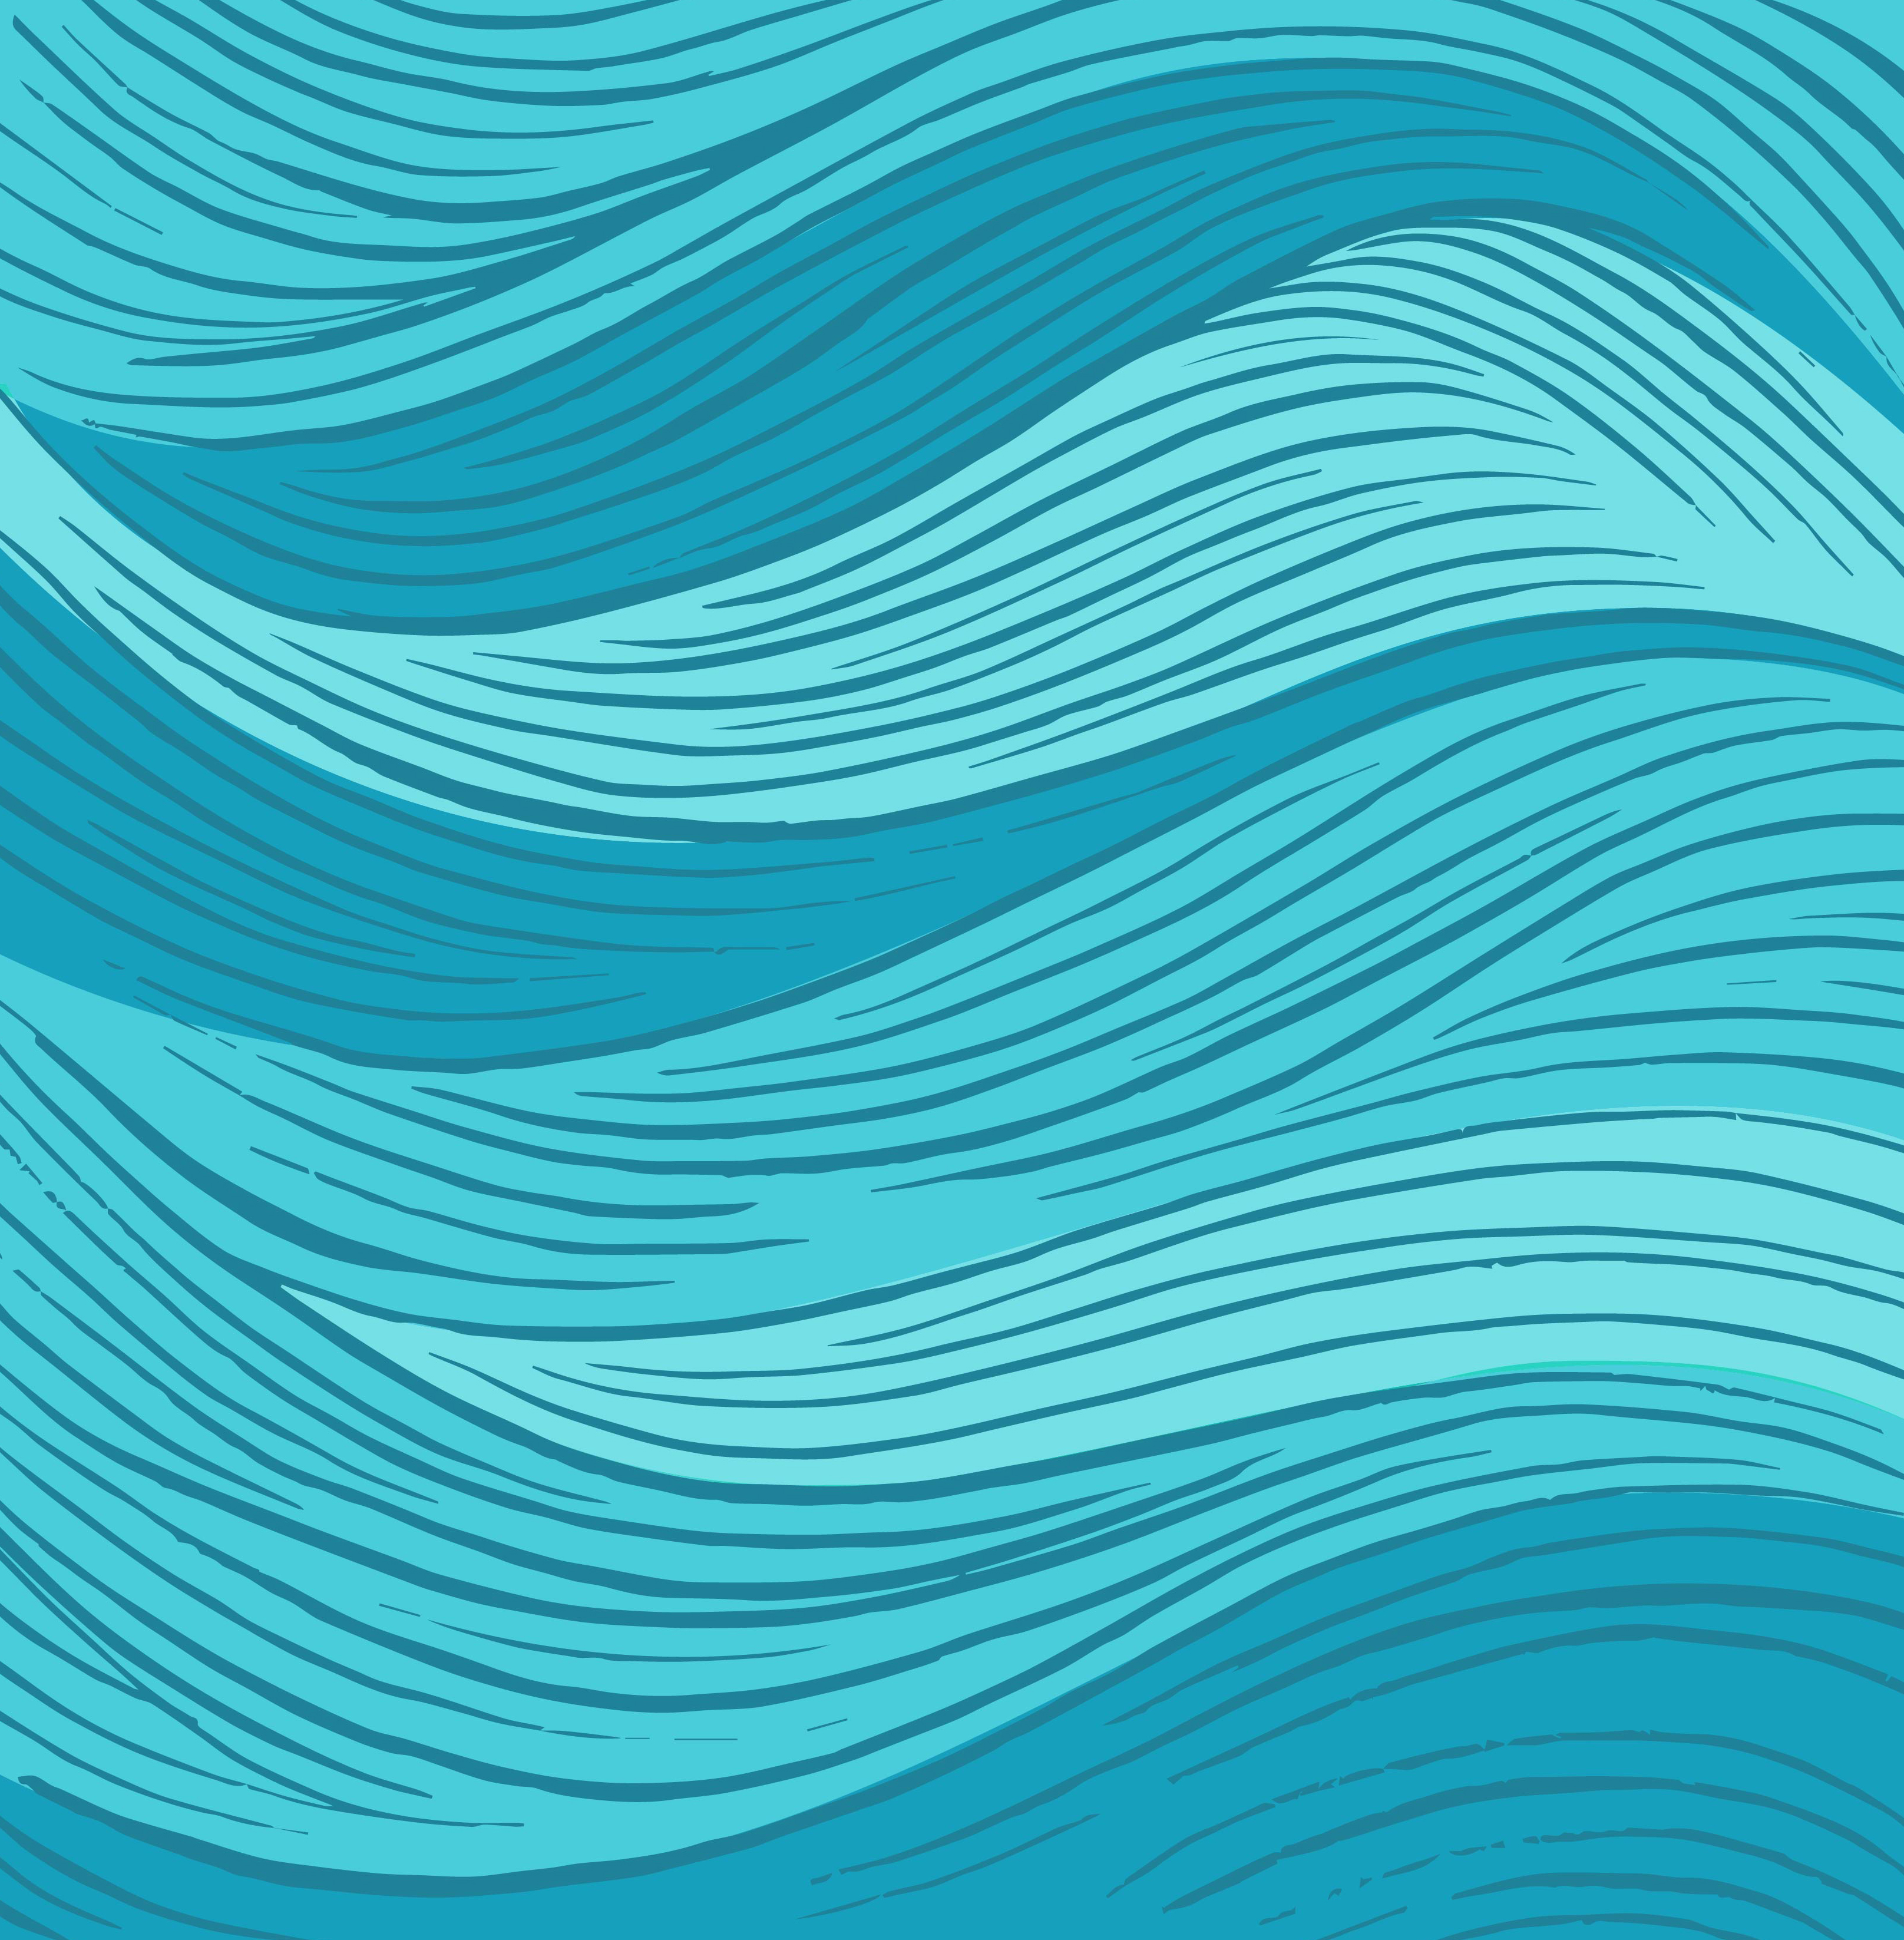 Blue Wavy Lines Background, Textured, Textures, Blue Background Image For Free Download